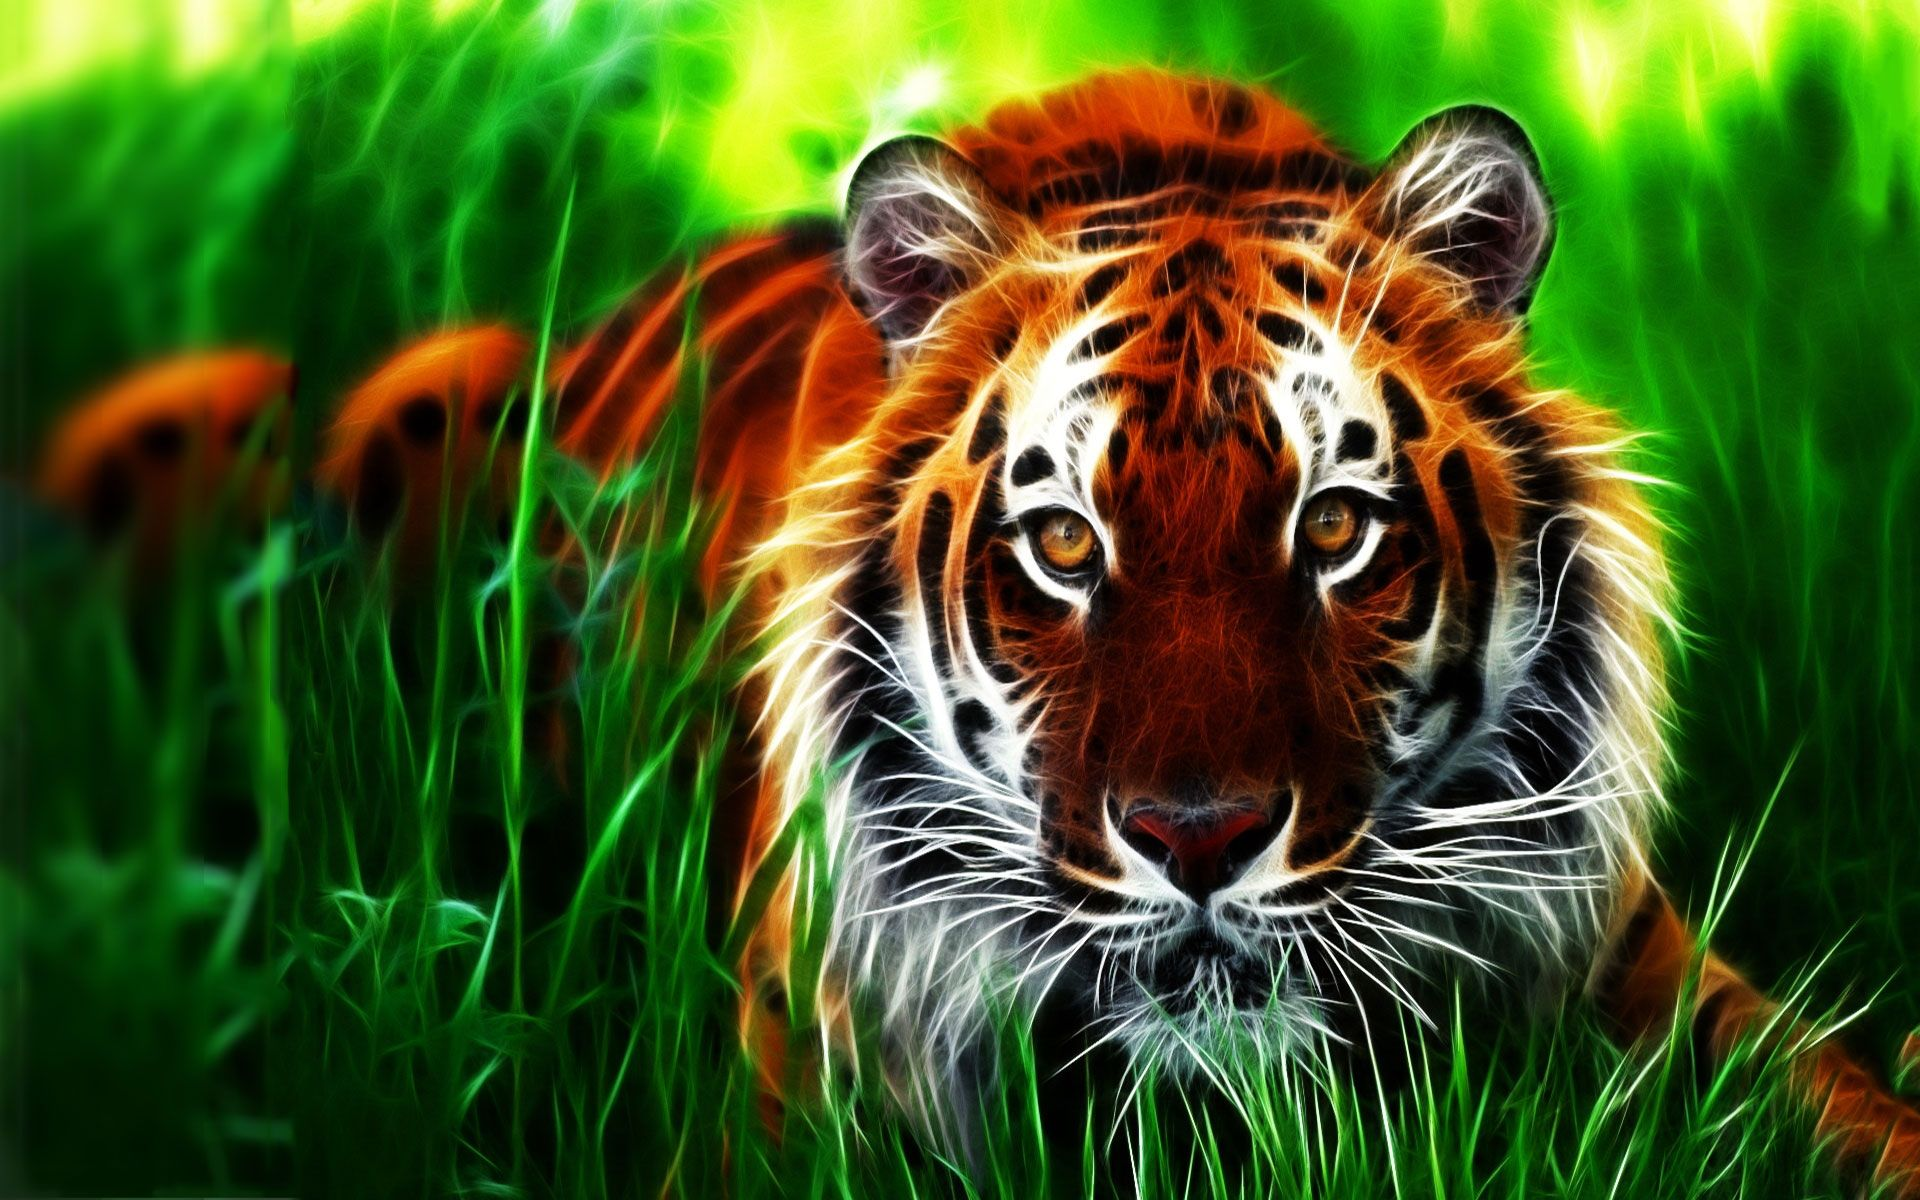 Best 3d animal wallpaper hd animated animal wallpaper - All animals hd wallpapers ...